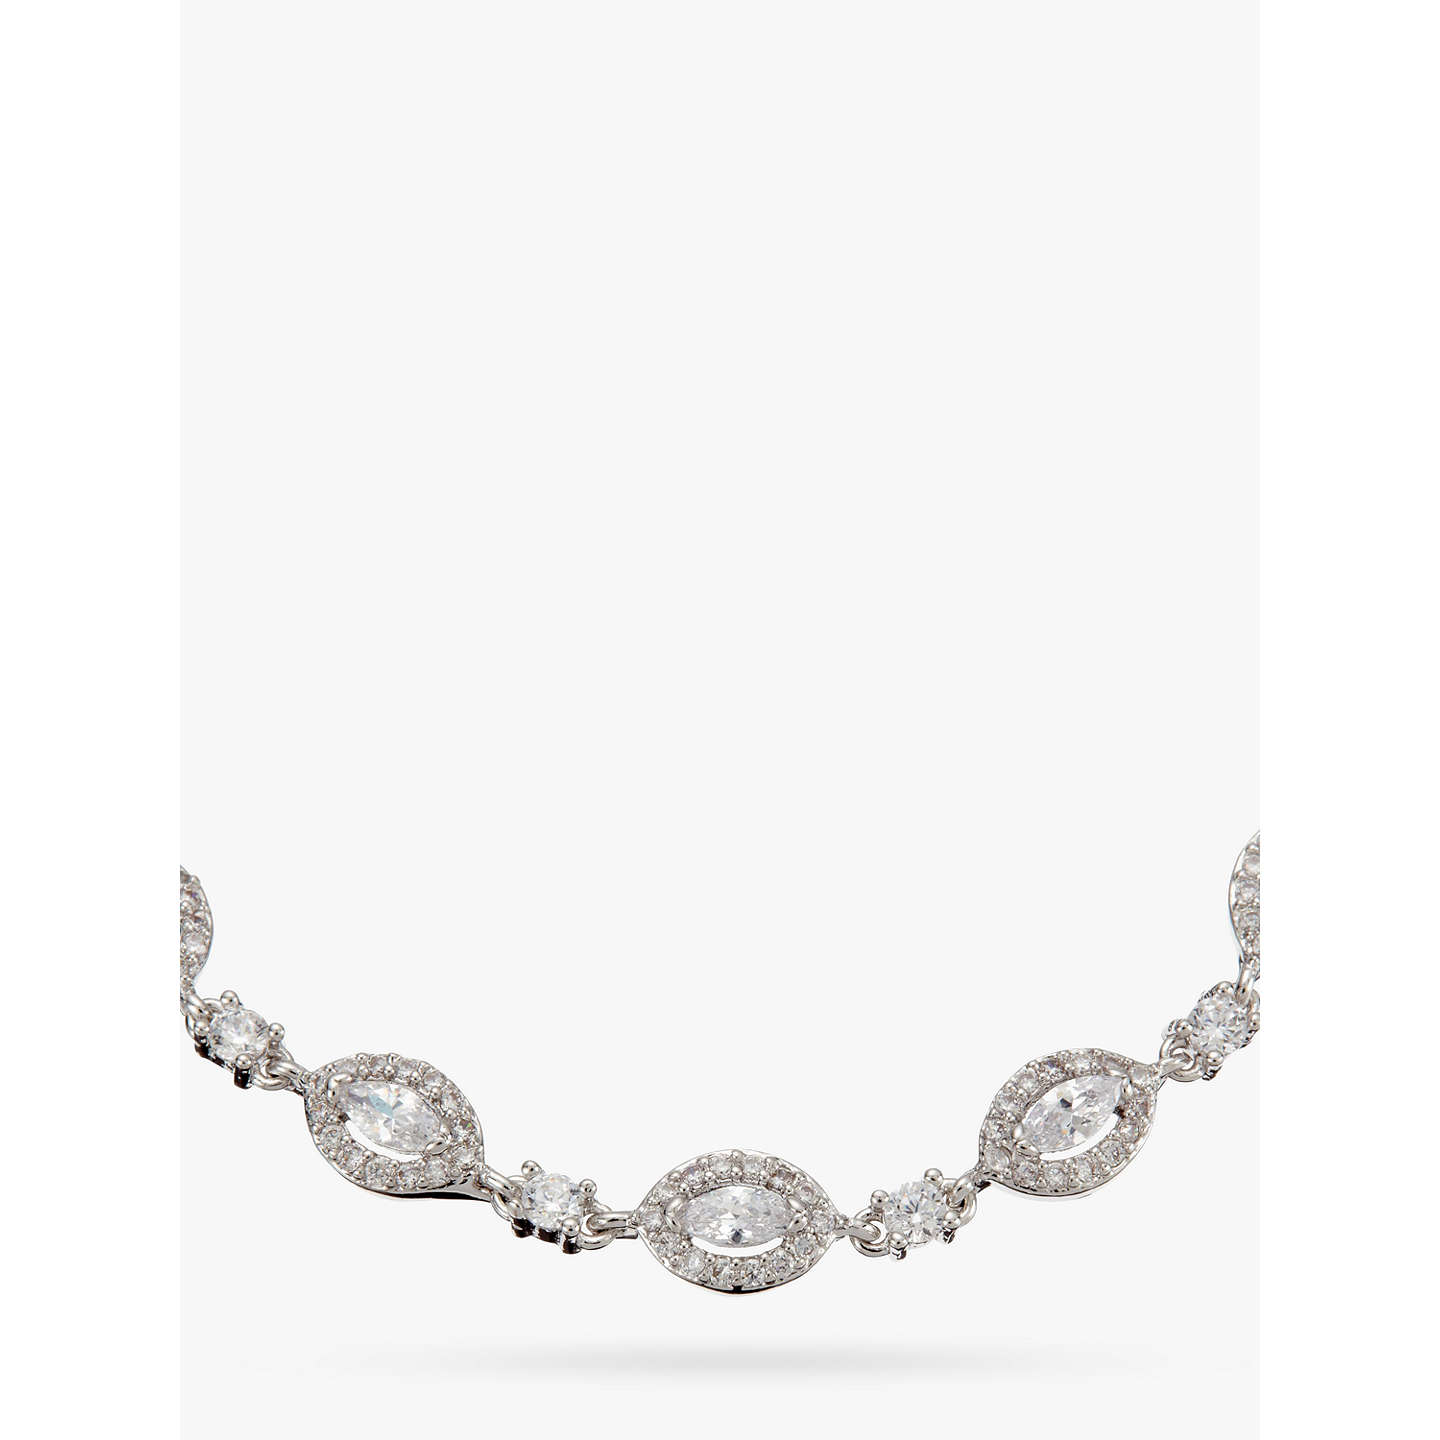 BuyIvory & Co. Parisian Oval Cubic Zirconia Pave Bracelet, Silver Online at johnlewis.com